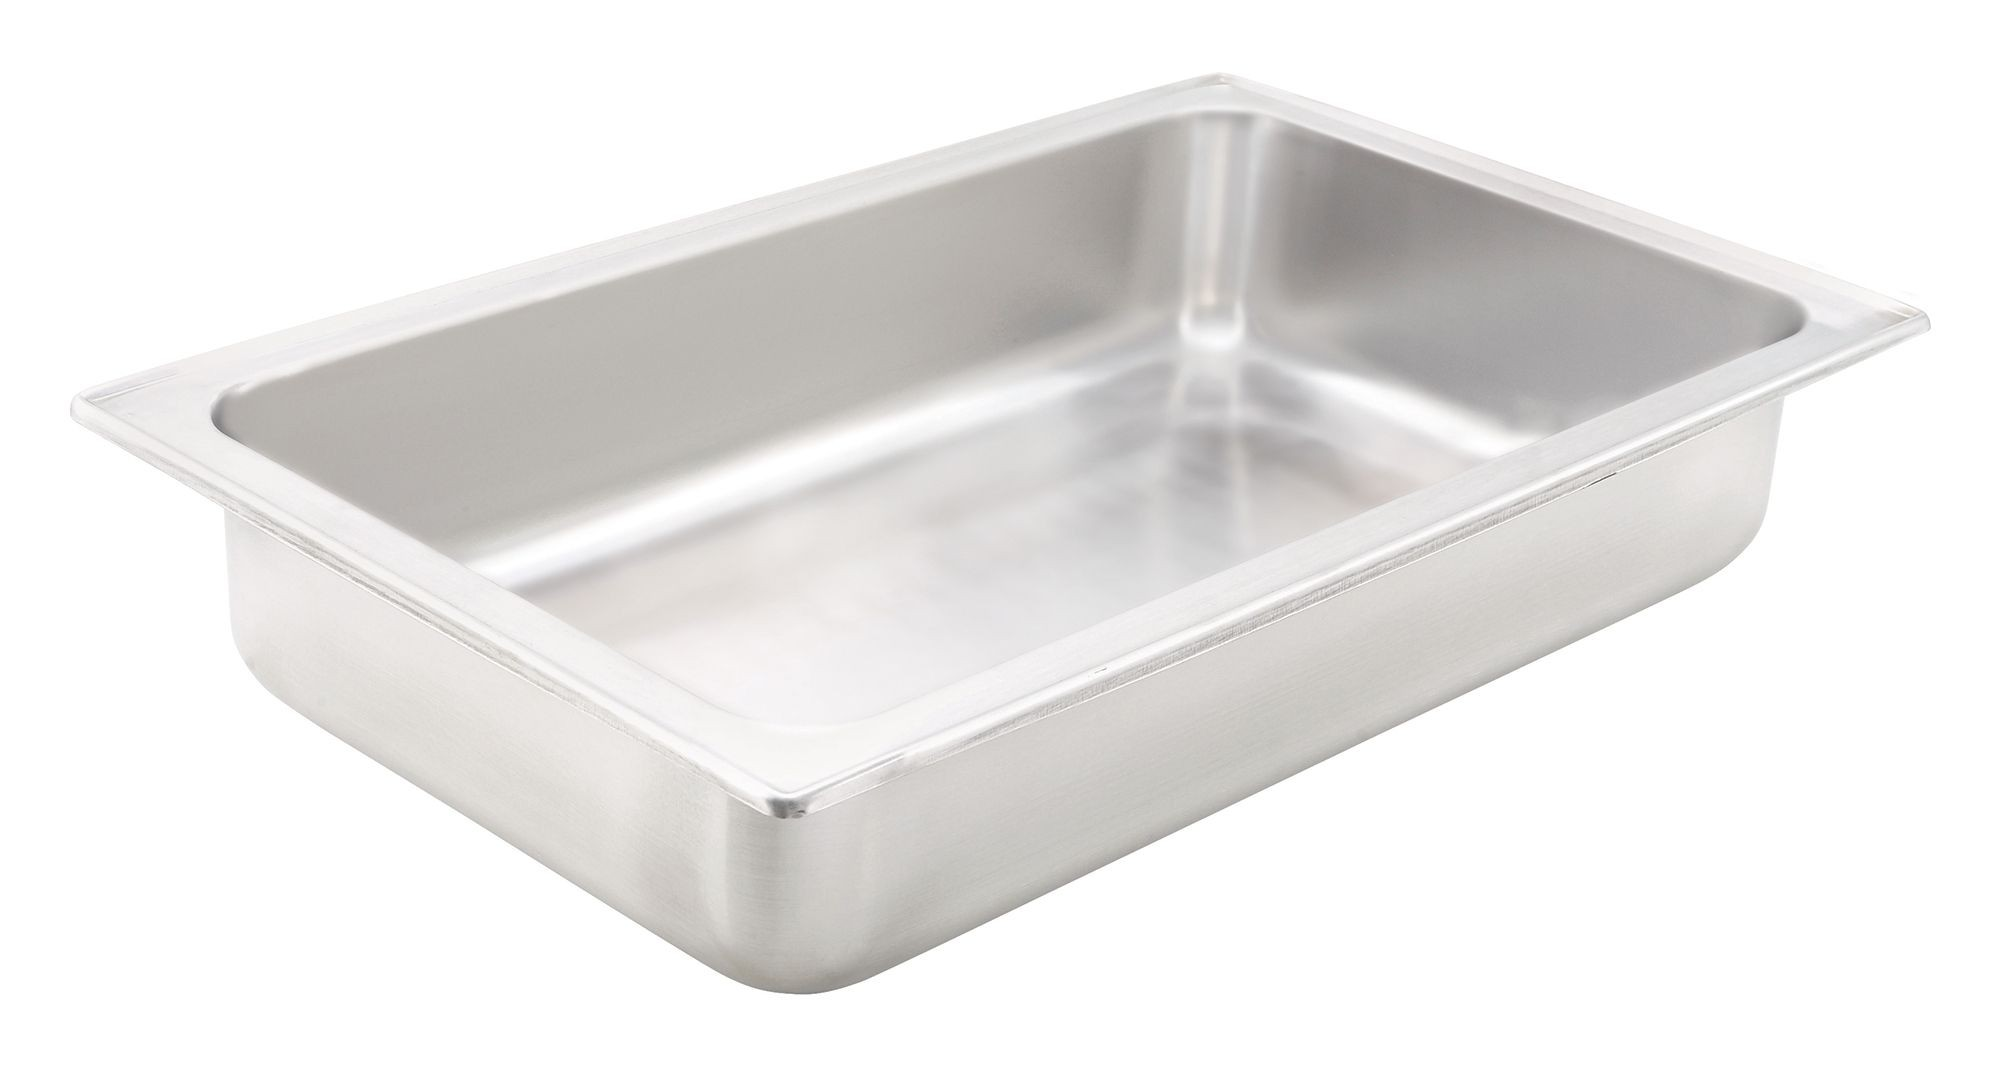 Stainless Steel Full Size Water Pan - 4 Deep